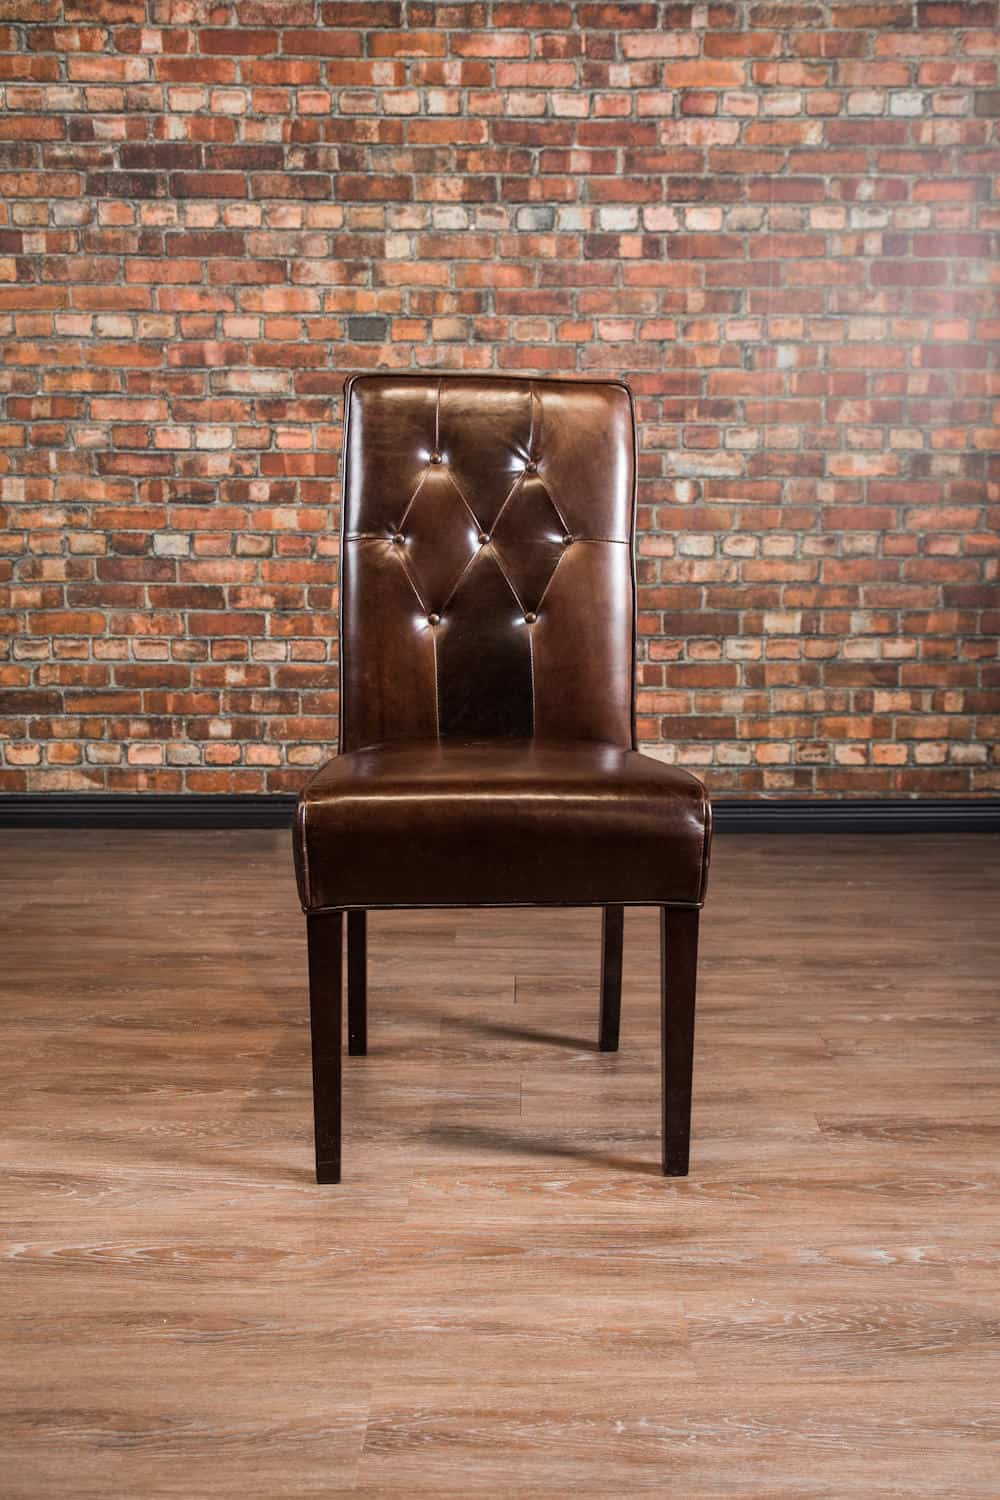 Sensational Tufted Dining Chair Creativecarmelina Interior Chair Design Creativecarmelinacom